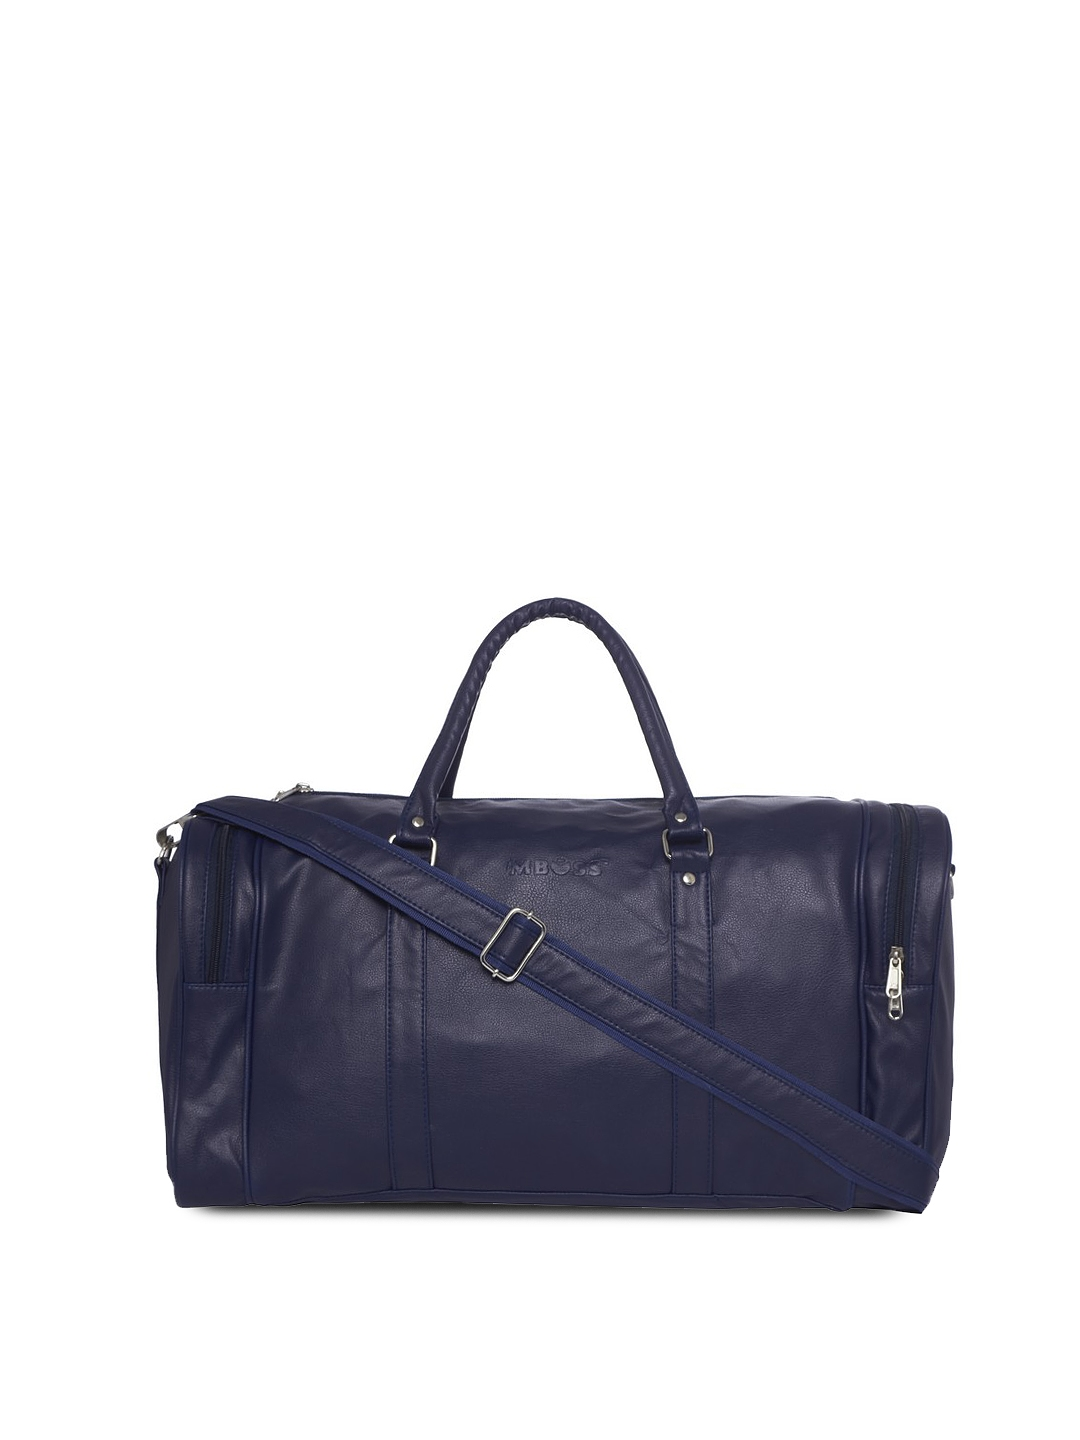 MBOSS Navy Blue Duffel Travel Bag